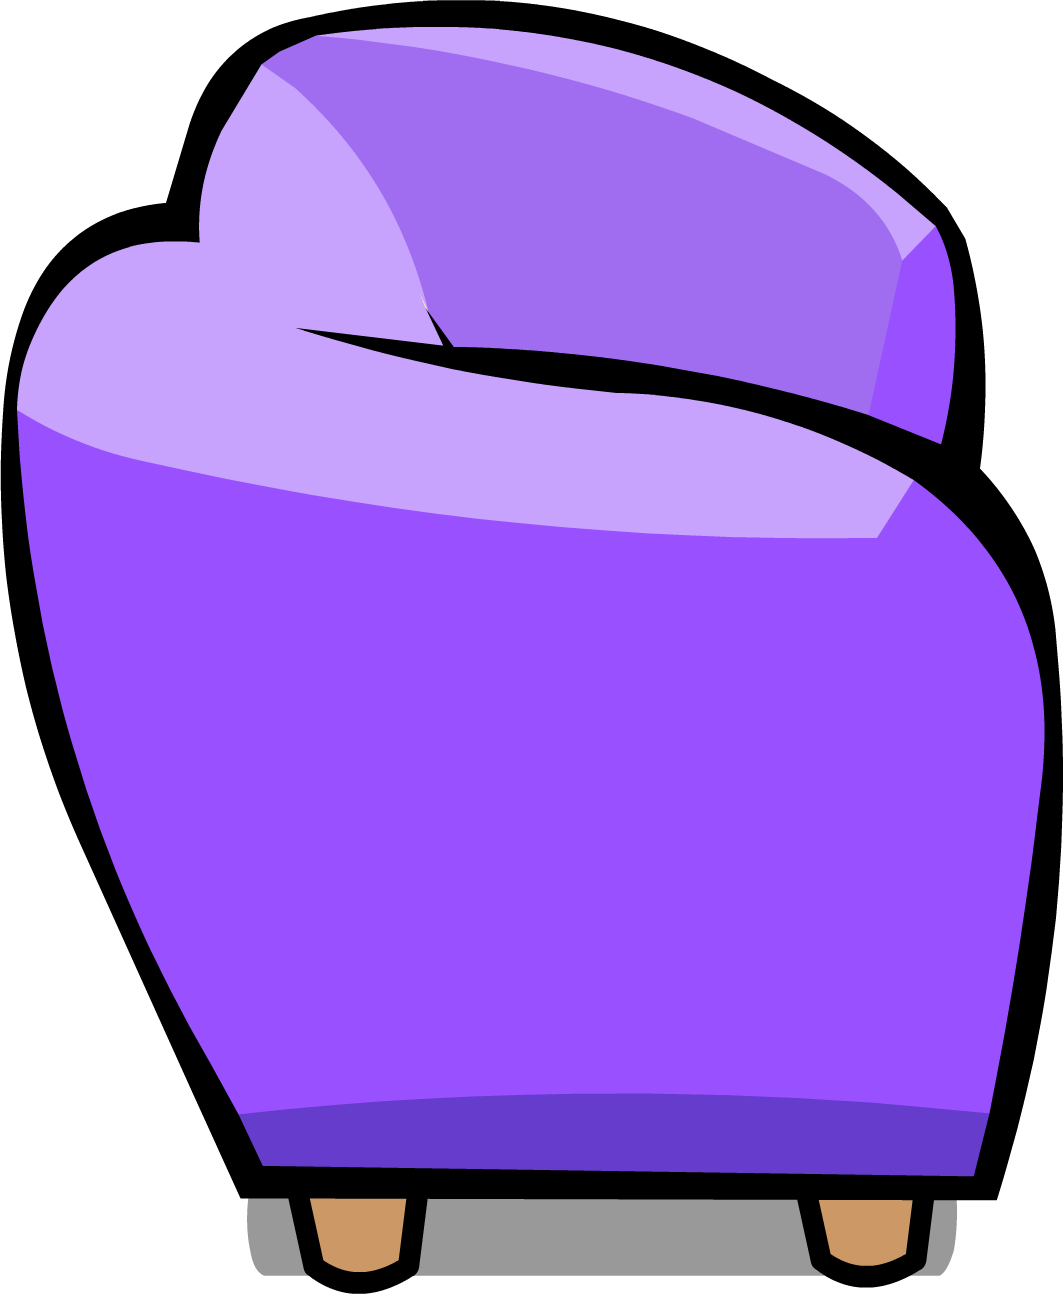 Couch clipart purple couch. Image sprite png club